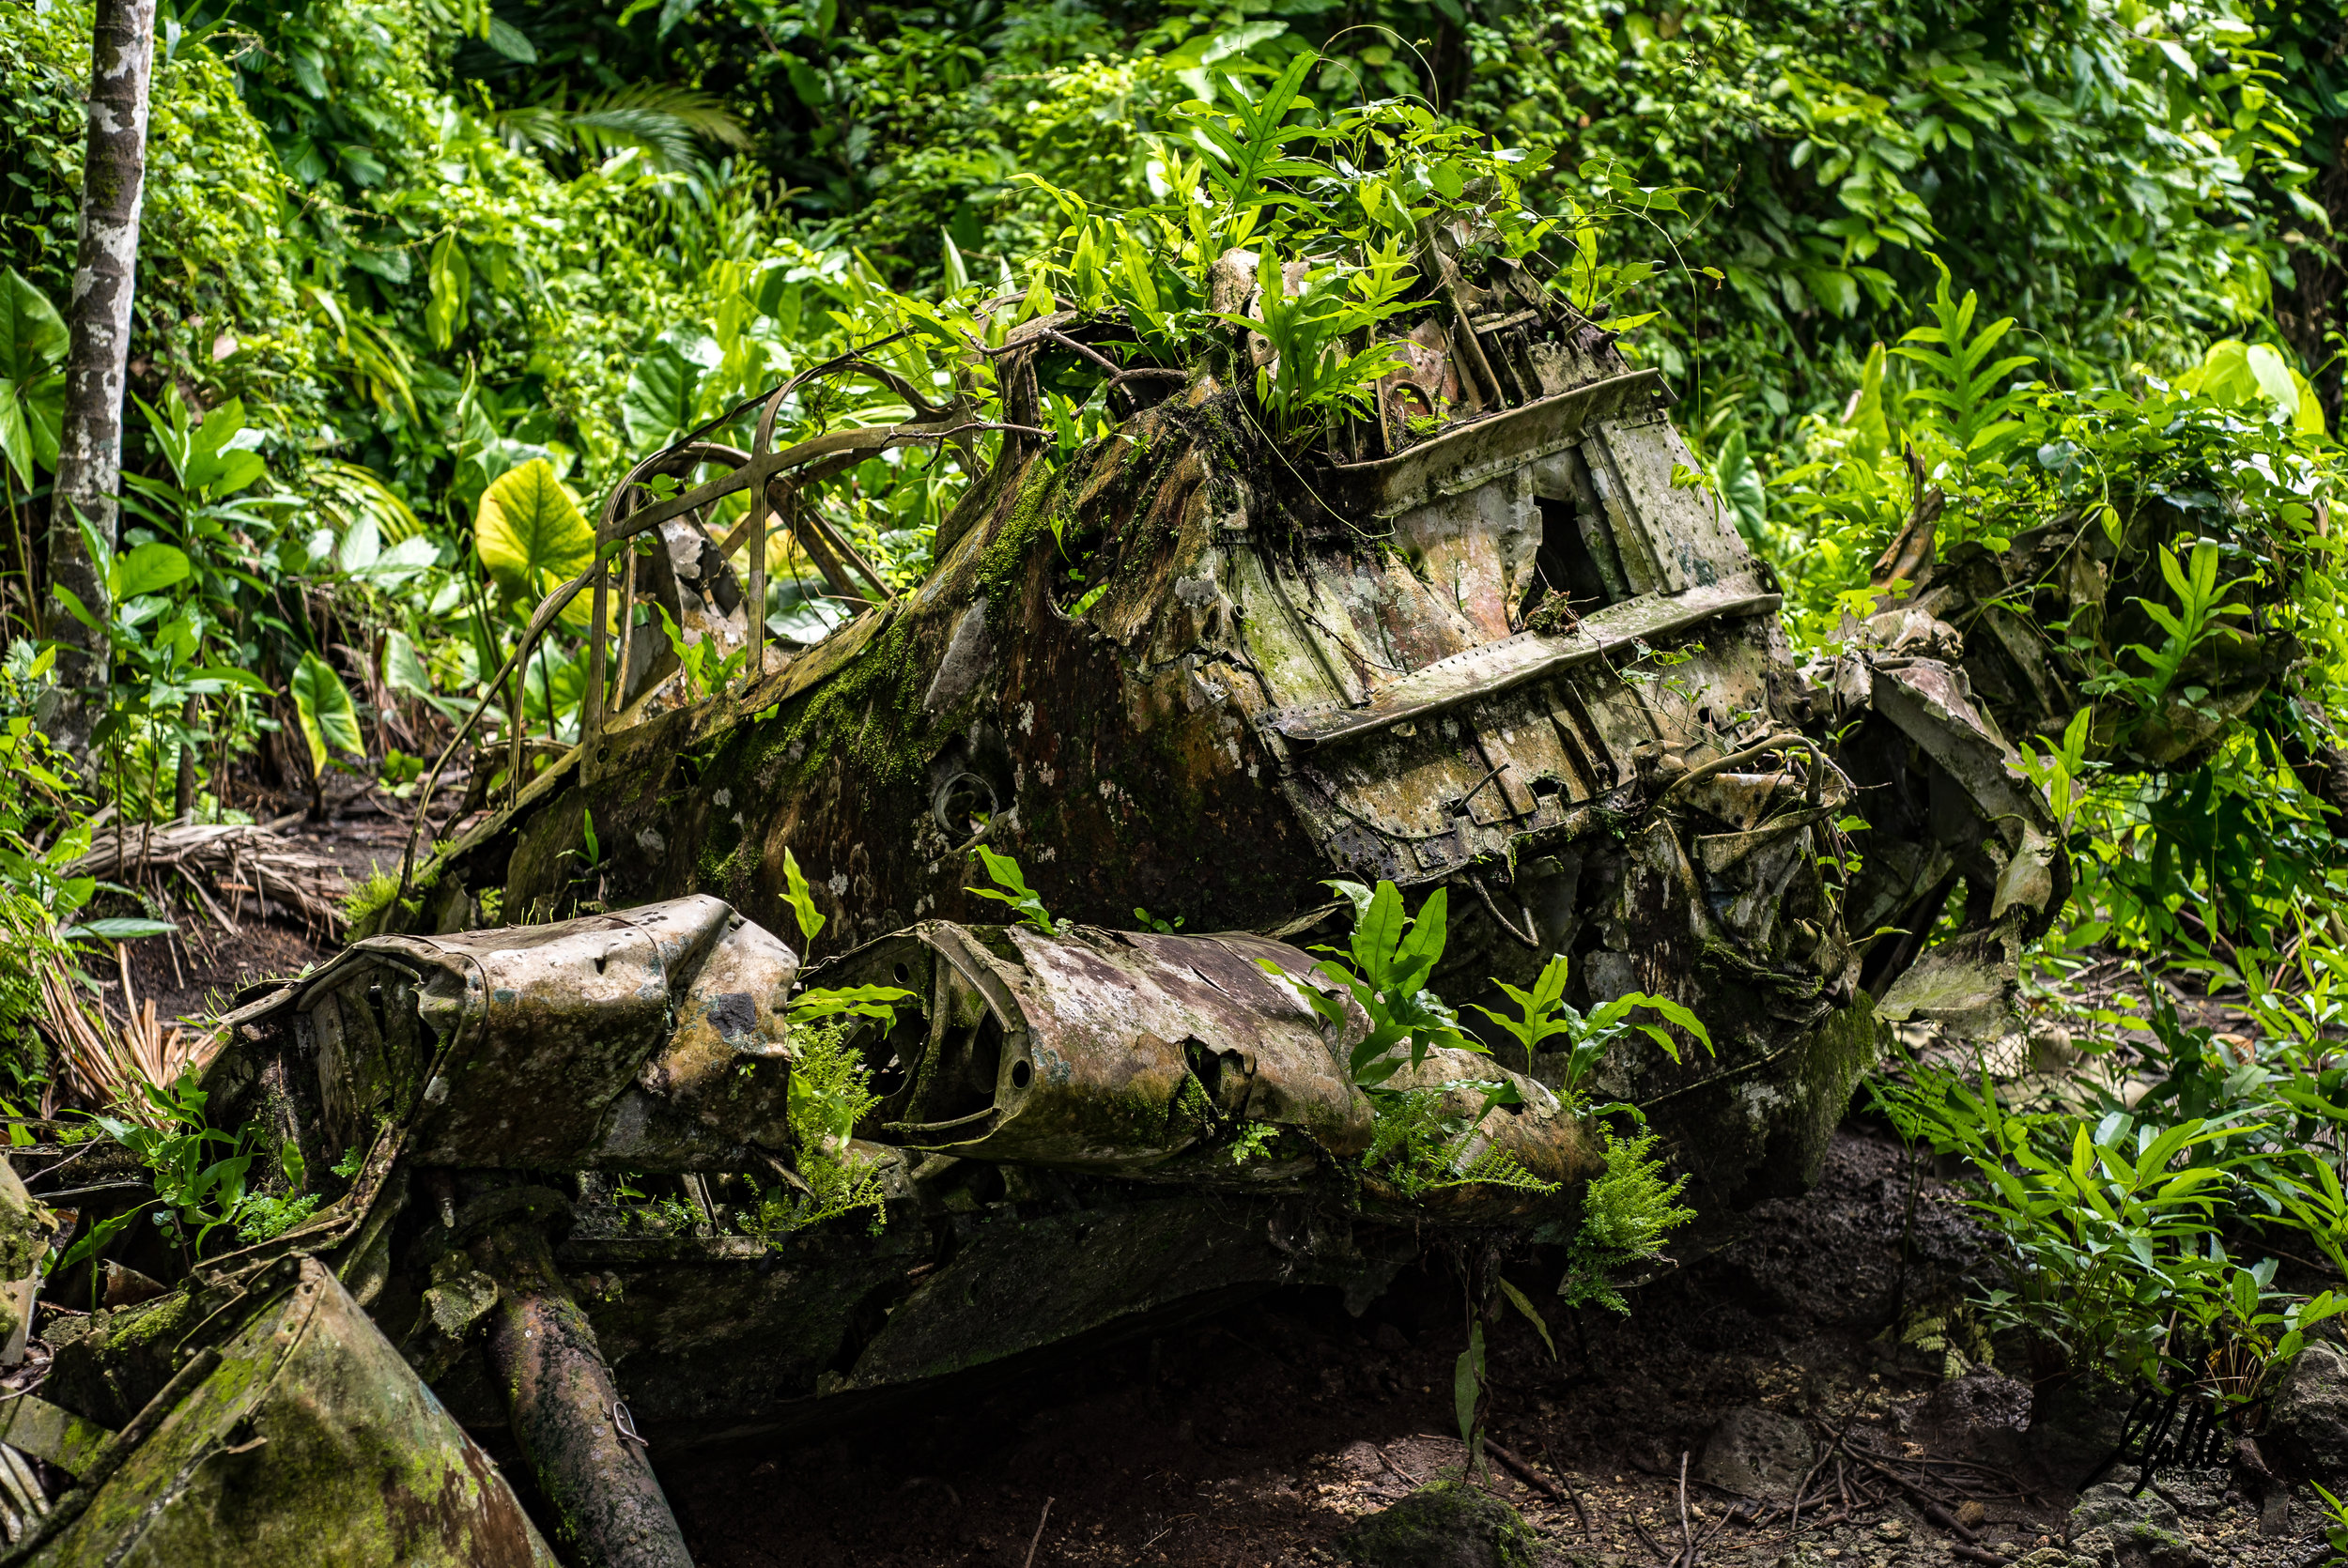 Before the invasion the Japanese used the airfield for bomber and fighter planes to harass American shipping and island bases, all of which were destroyed during the aerial bombardments. This Mitsubishi Zero crash landed in what is now jungle, killing the pilot. You can still see the extended wheels. The propeller and engine can be found further in the jungle.